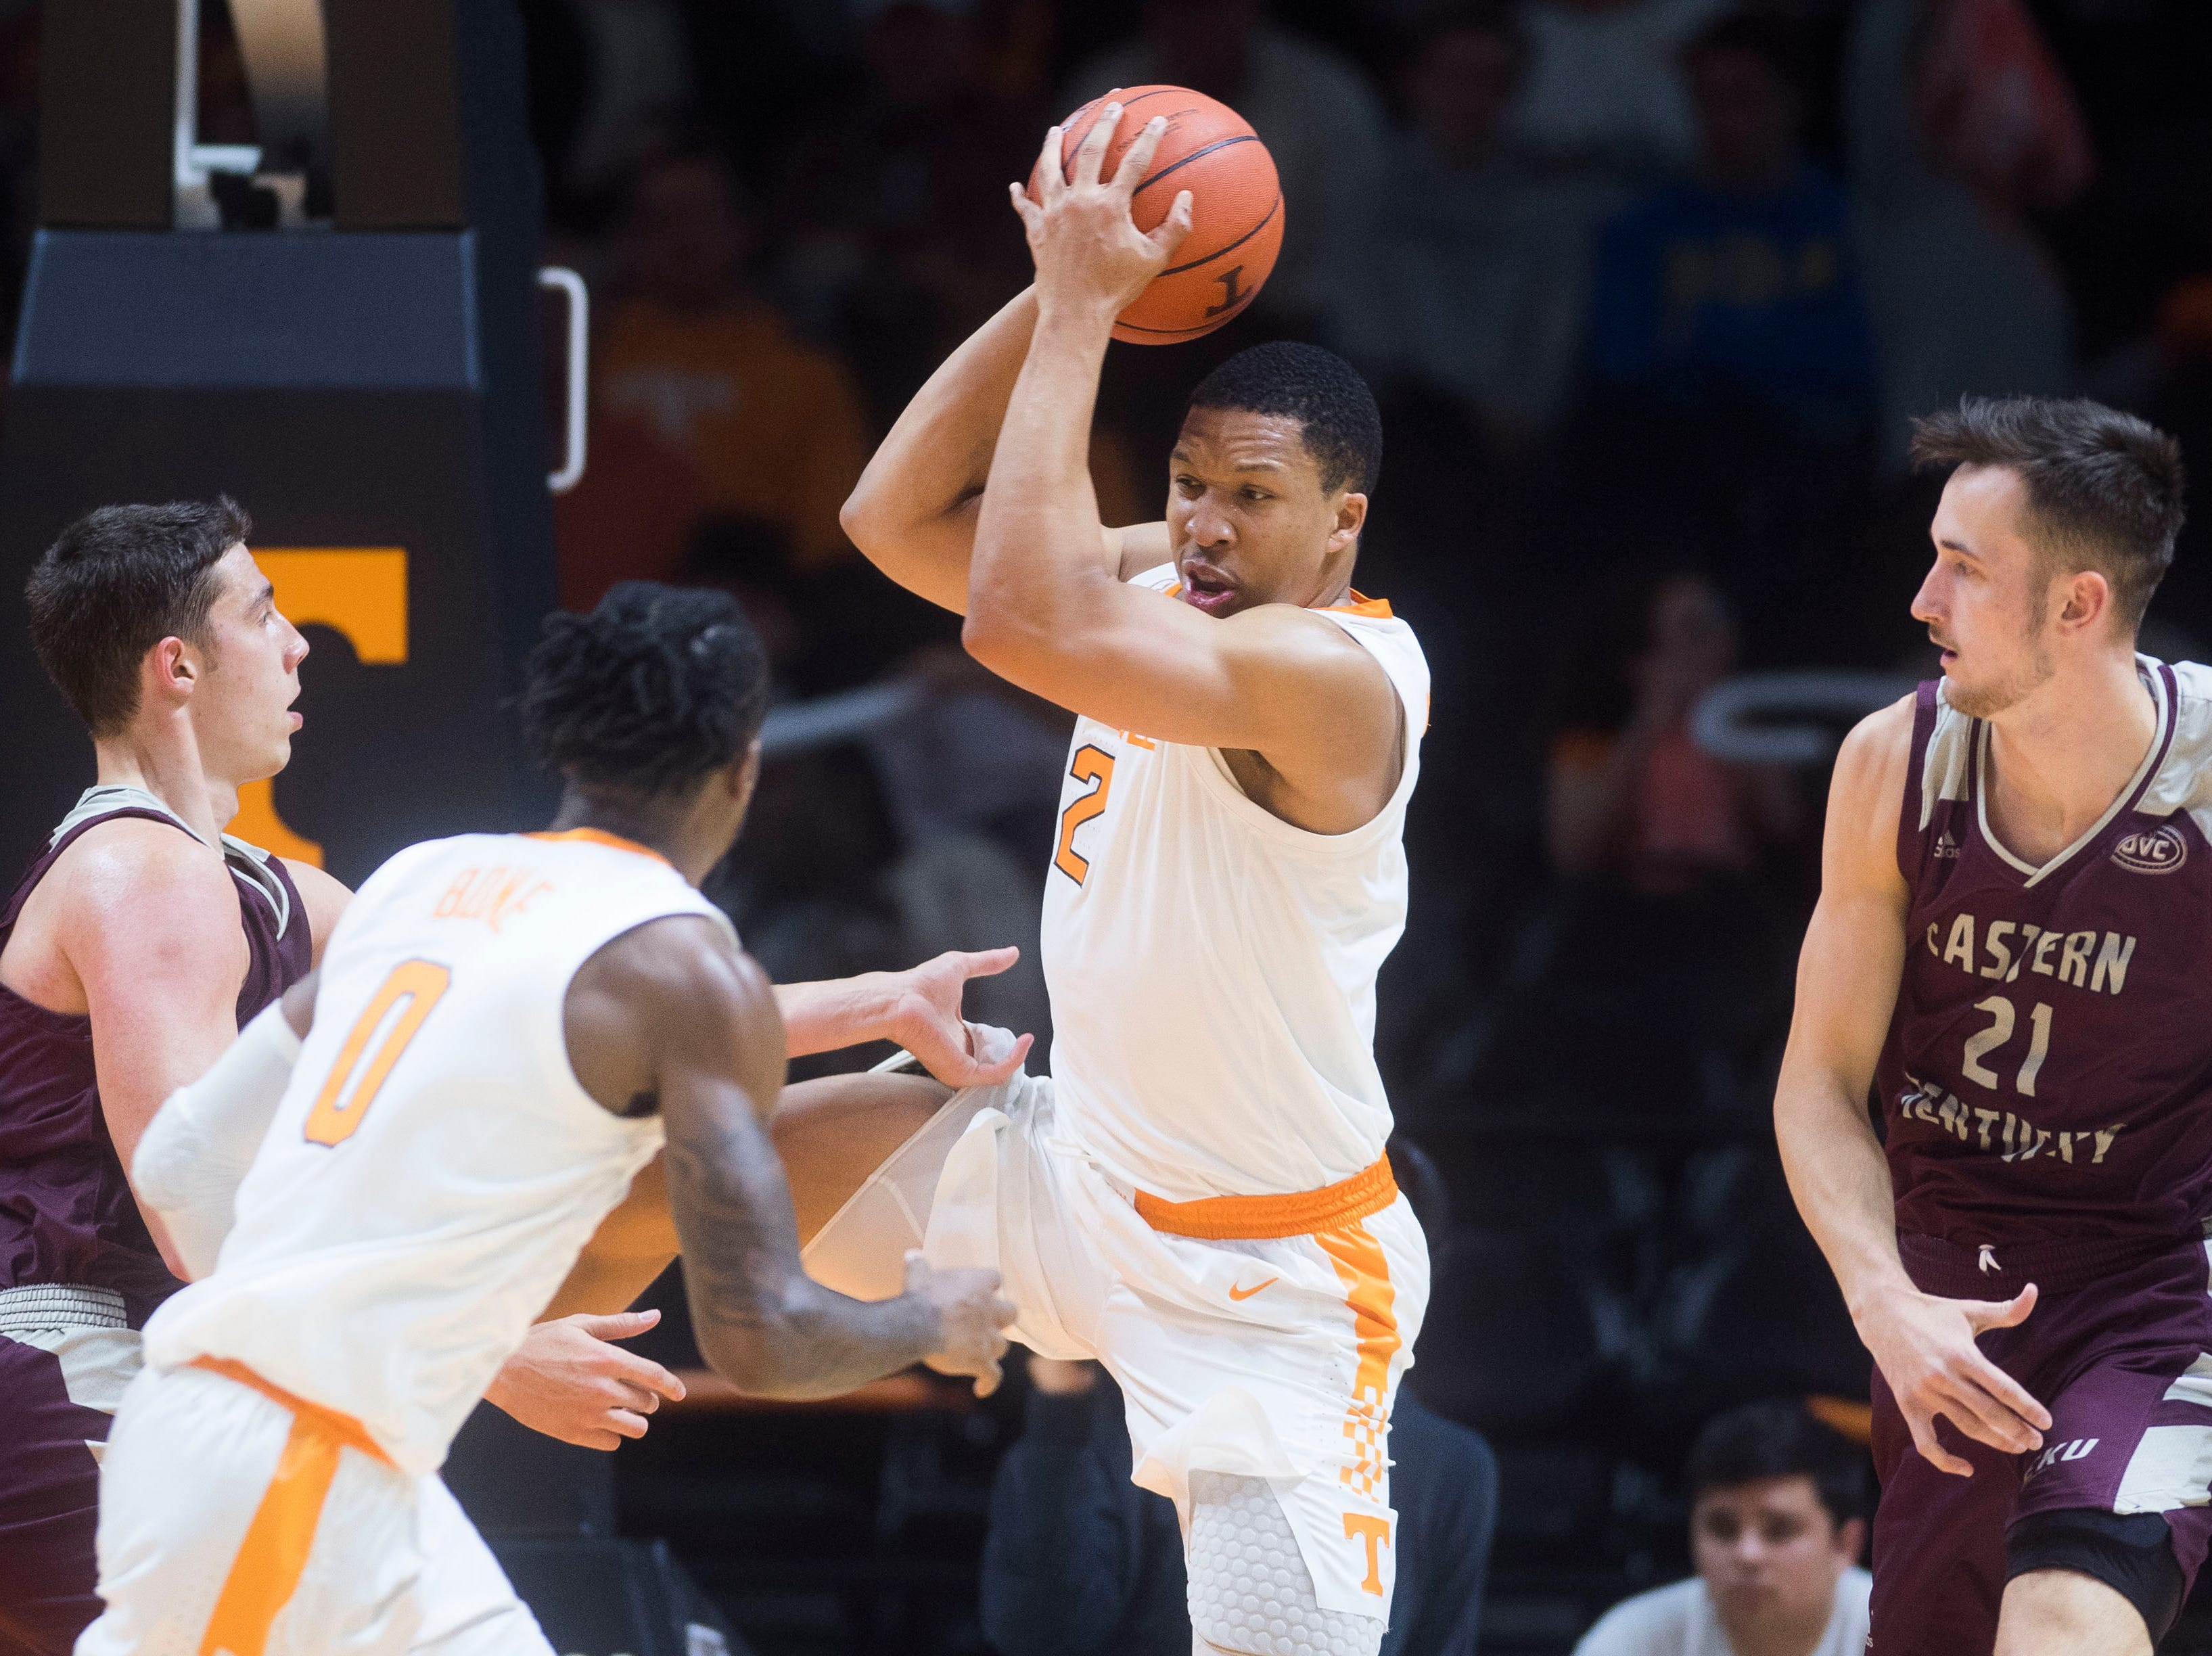 Tennessee's Grant Williams (2) grabs the ball during the second half of a NCAA men's basketball game between Tennessee and Eastern Kentucky University at Thompson-Boling Arena Wednesday, Nov. 28, 2018. Tennessee defeated EKU 95-67.